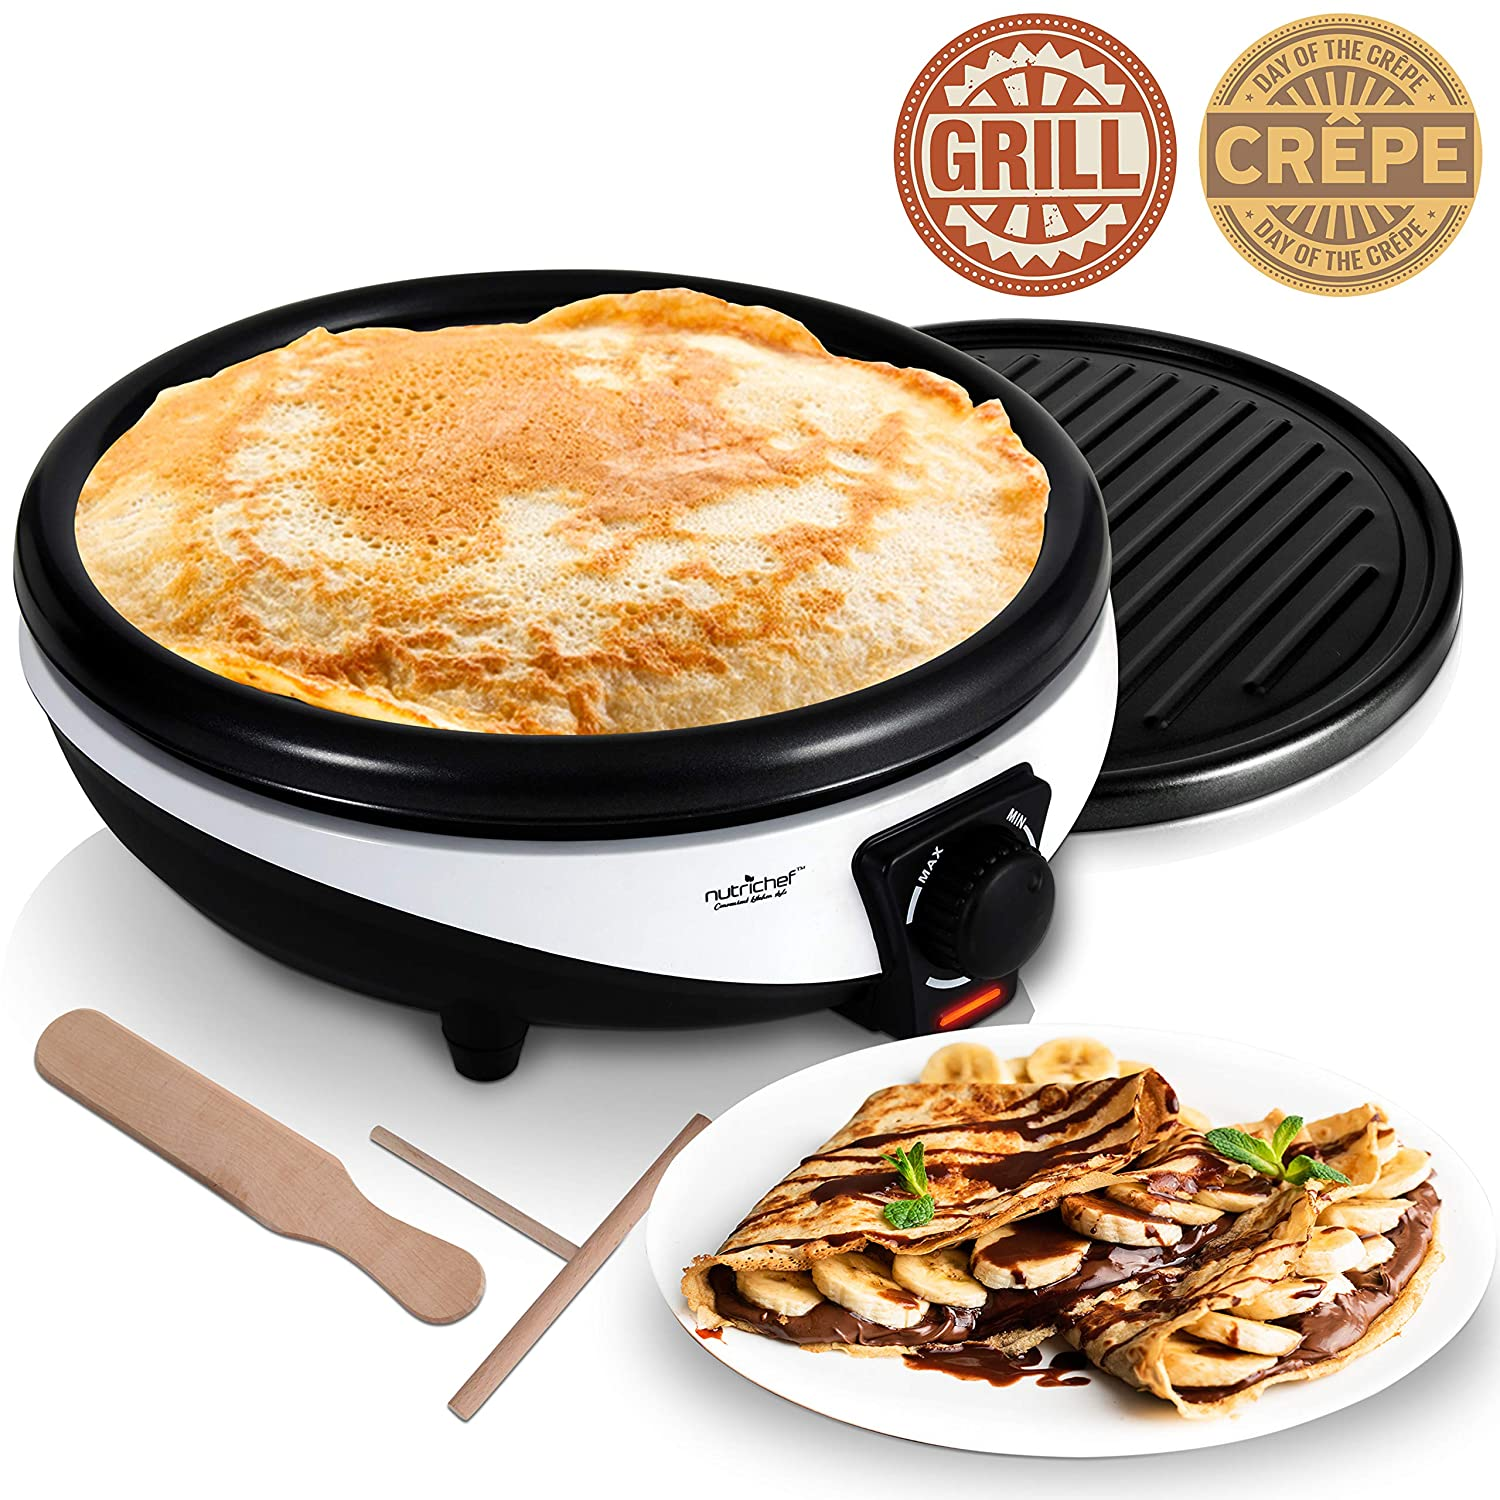 NutriChef Electric Griddle & Crepe Maker - Nonstick 11.8 Inch Hot Plate Cooktop, Adjustable Temperature Control, Batter Spreader & Spatula, Used Also For Pancakes, Blintzes & Eggs PKCYM15